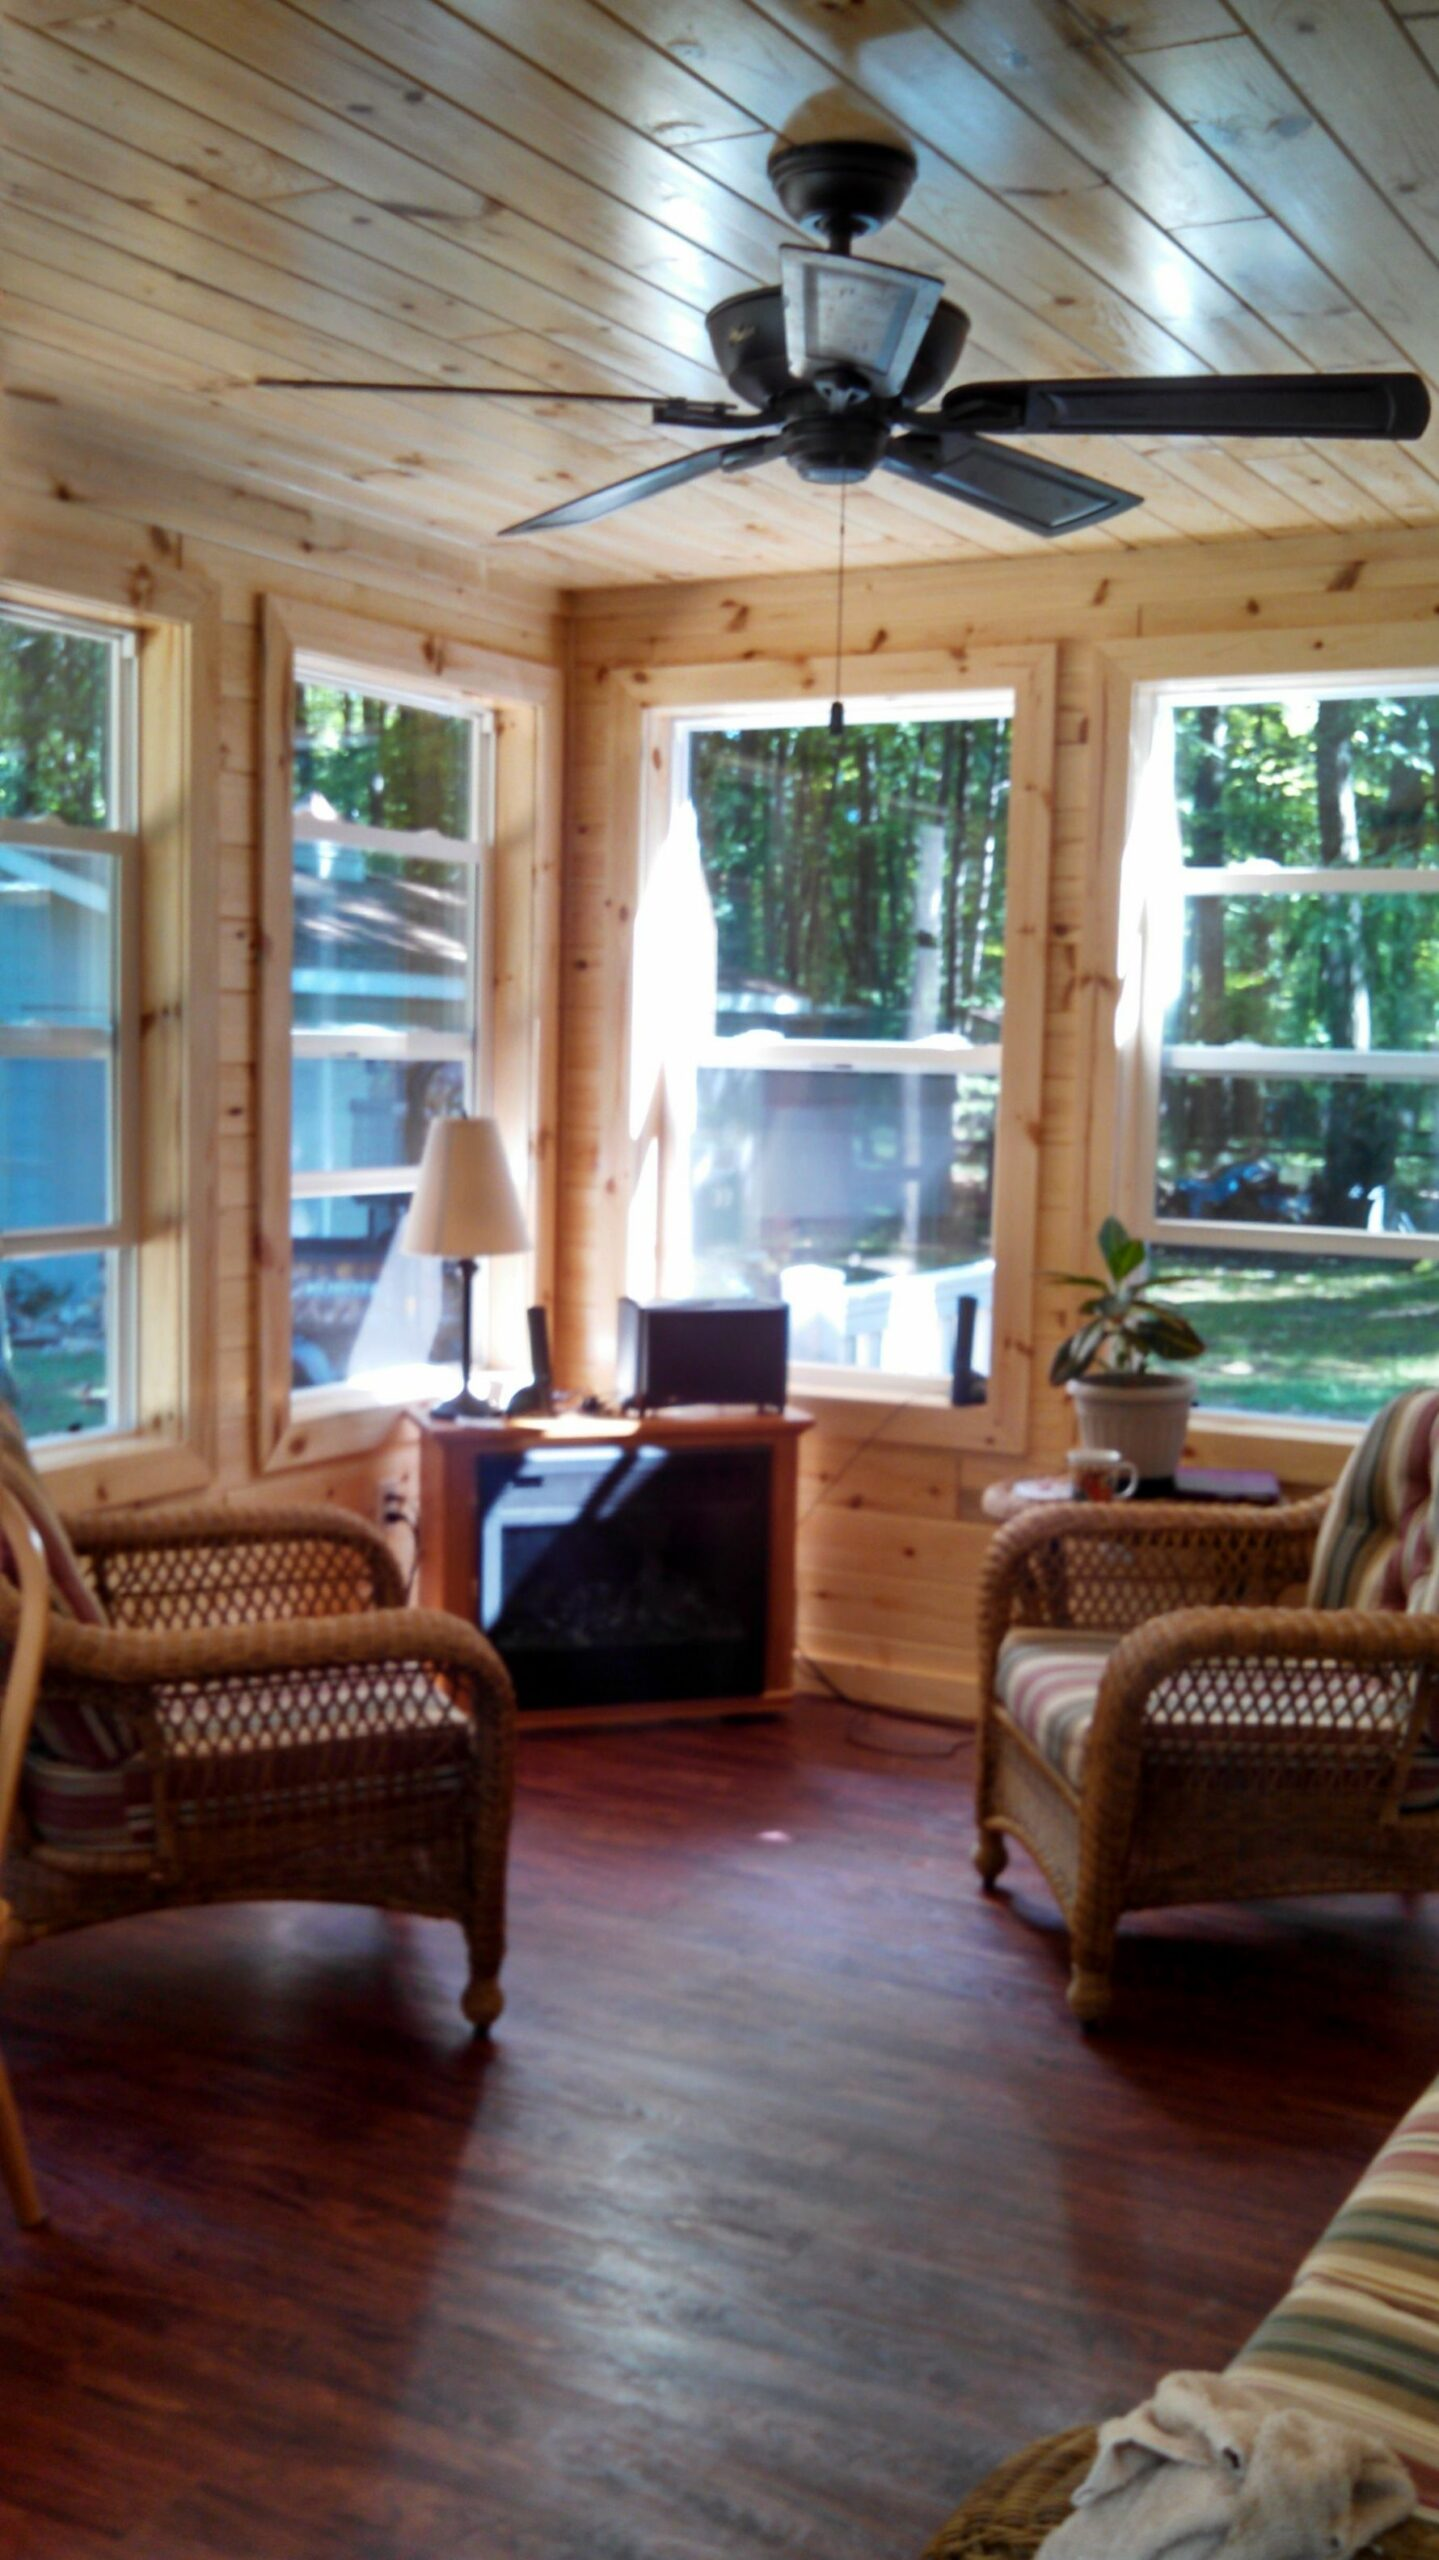 knotty pine sunroom | Small sunroom, Indoor porch, Rustic sunroom - sunroom rustic ideas